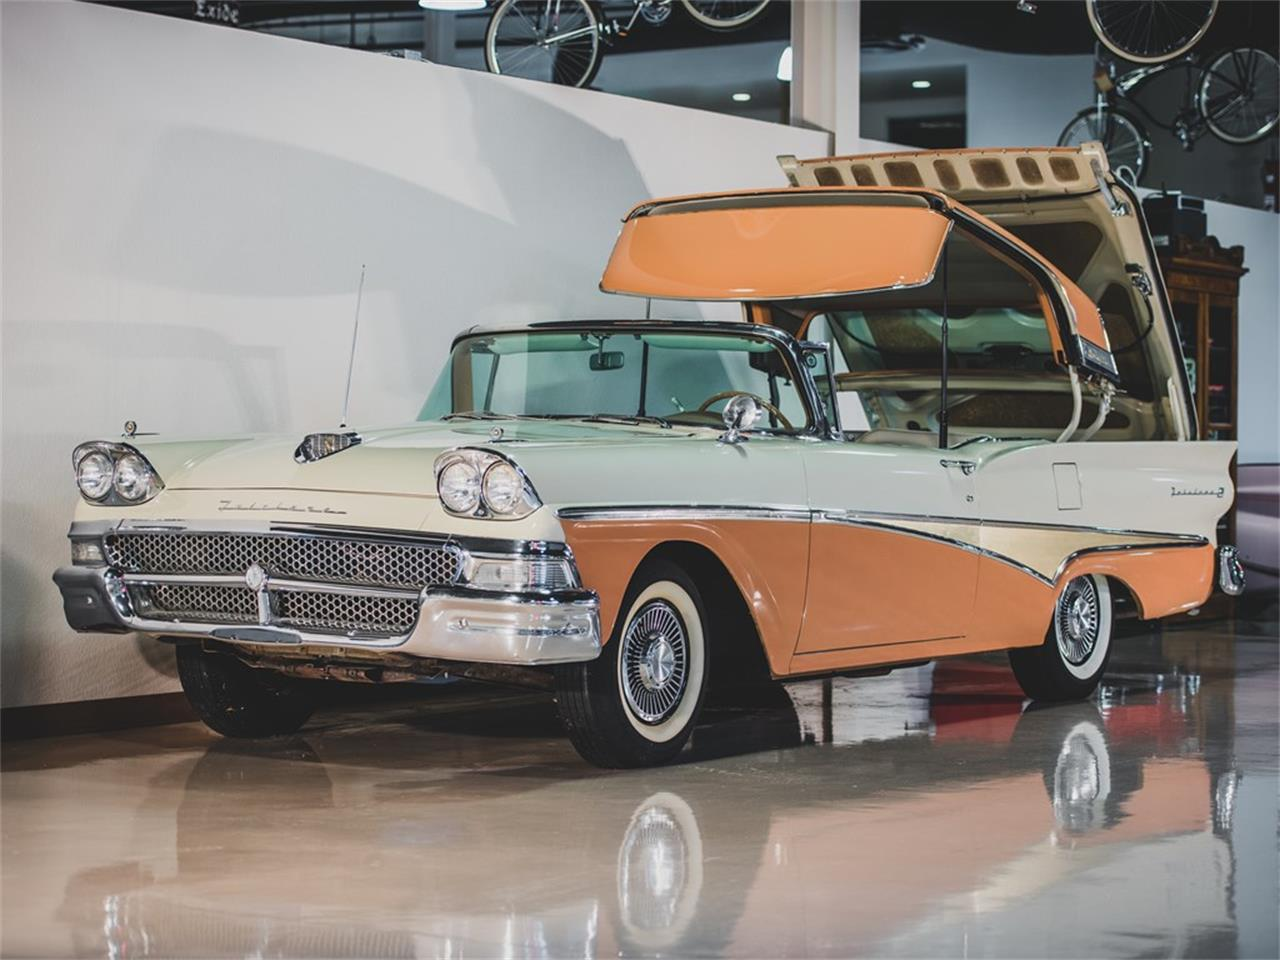 1958 Ford Fairlane 500 for sale in Fort Lauderdale, FL